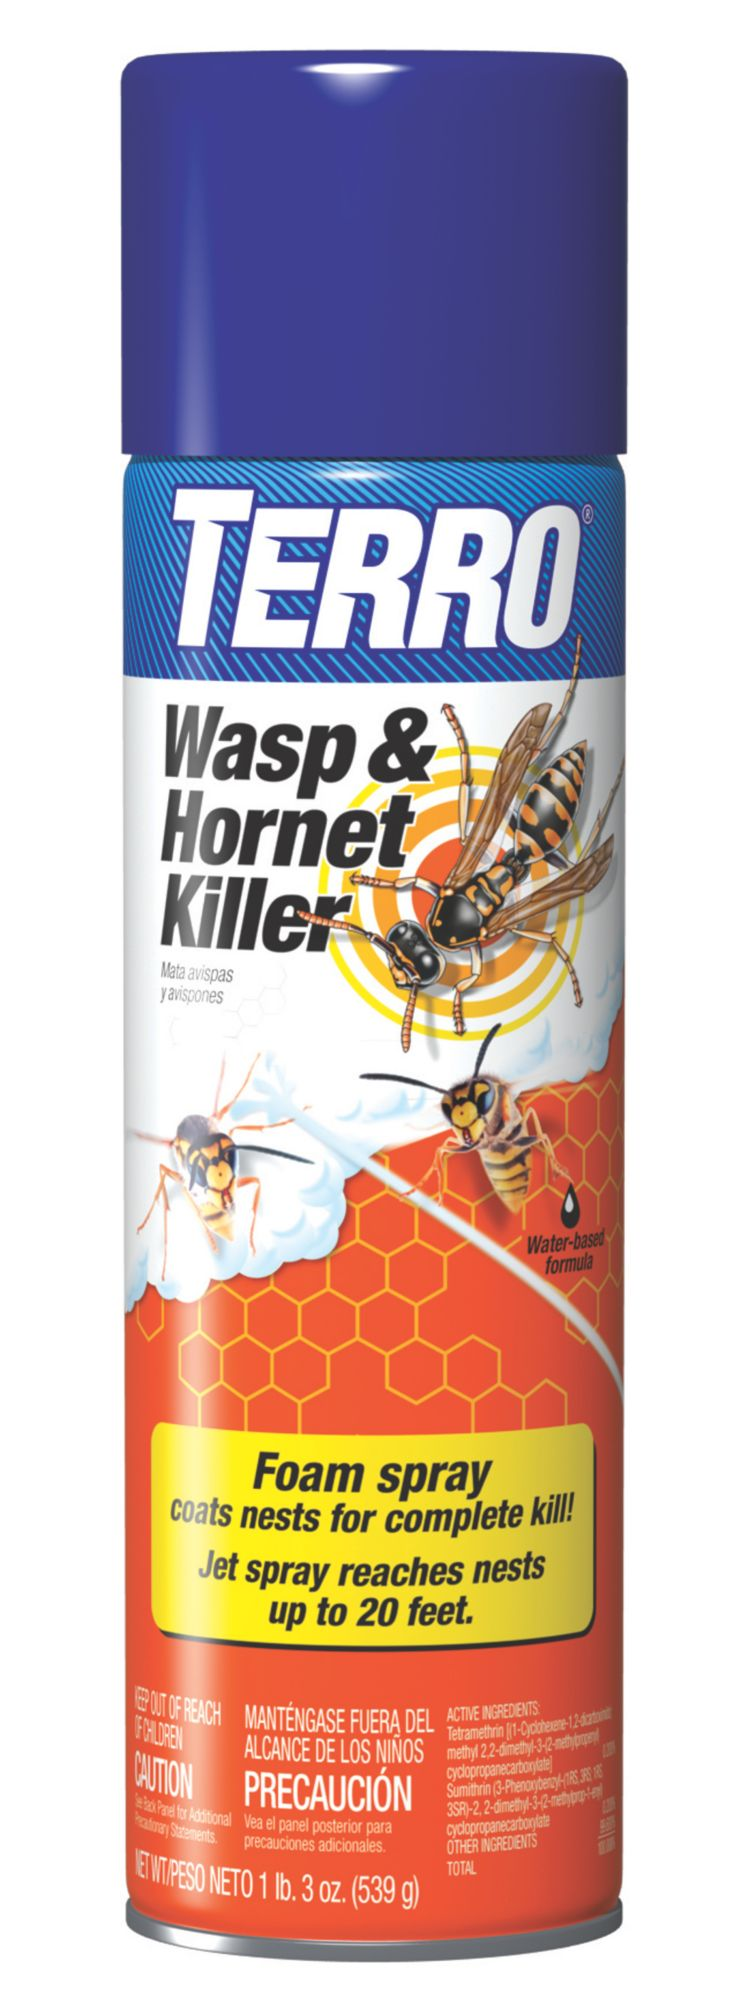 wasp nest killer - 751×2000